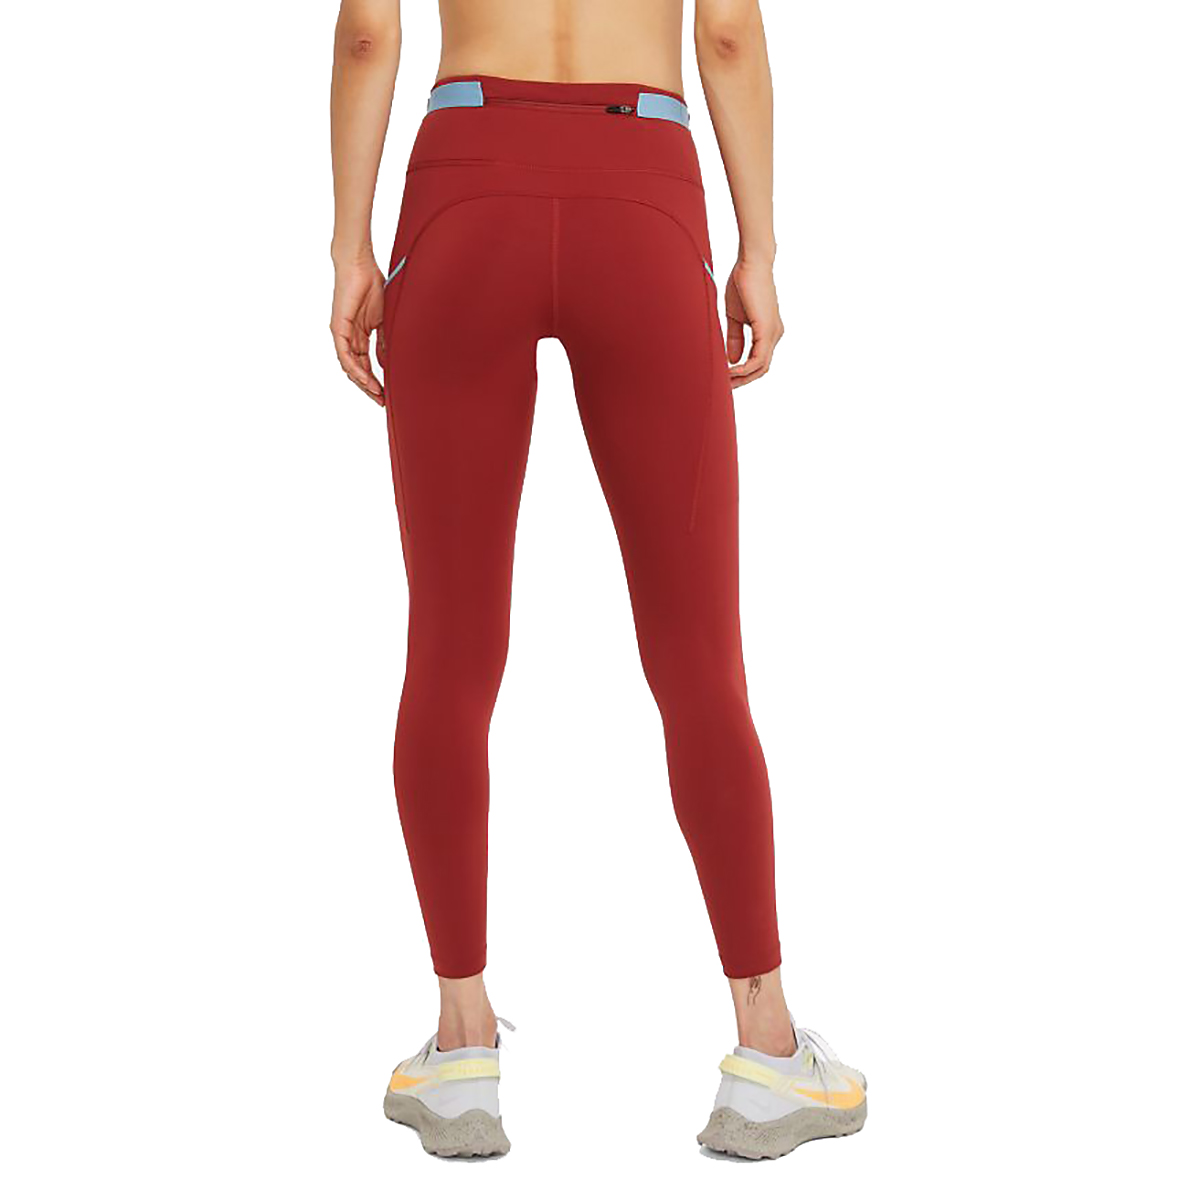 Women's Nike Epic Luxe Trail Running Tights - Color: Dark Cayenne/Cerulean/Reflective Silver - Size: XS, Dark Cayenne/Cerulean/Reflective Silver, large, image 2